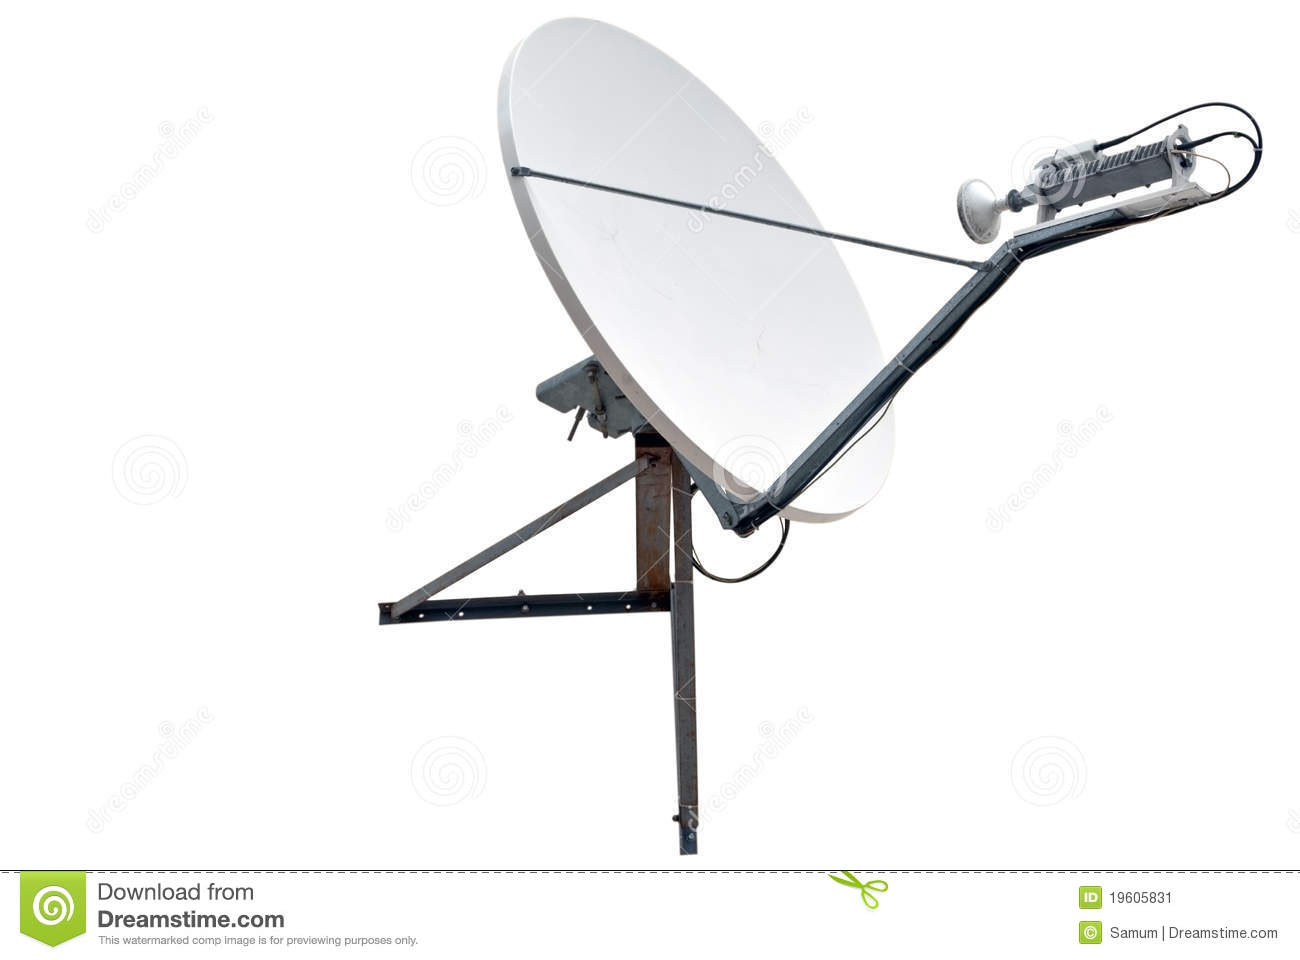 Satellite Dish Antenna Stock Image - Image: 19605831